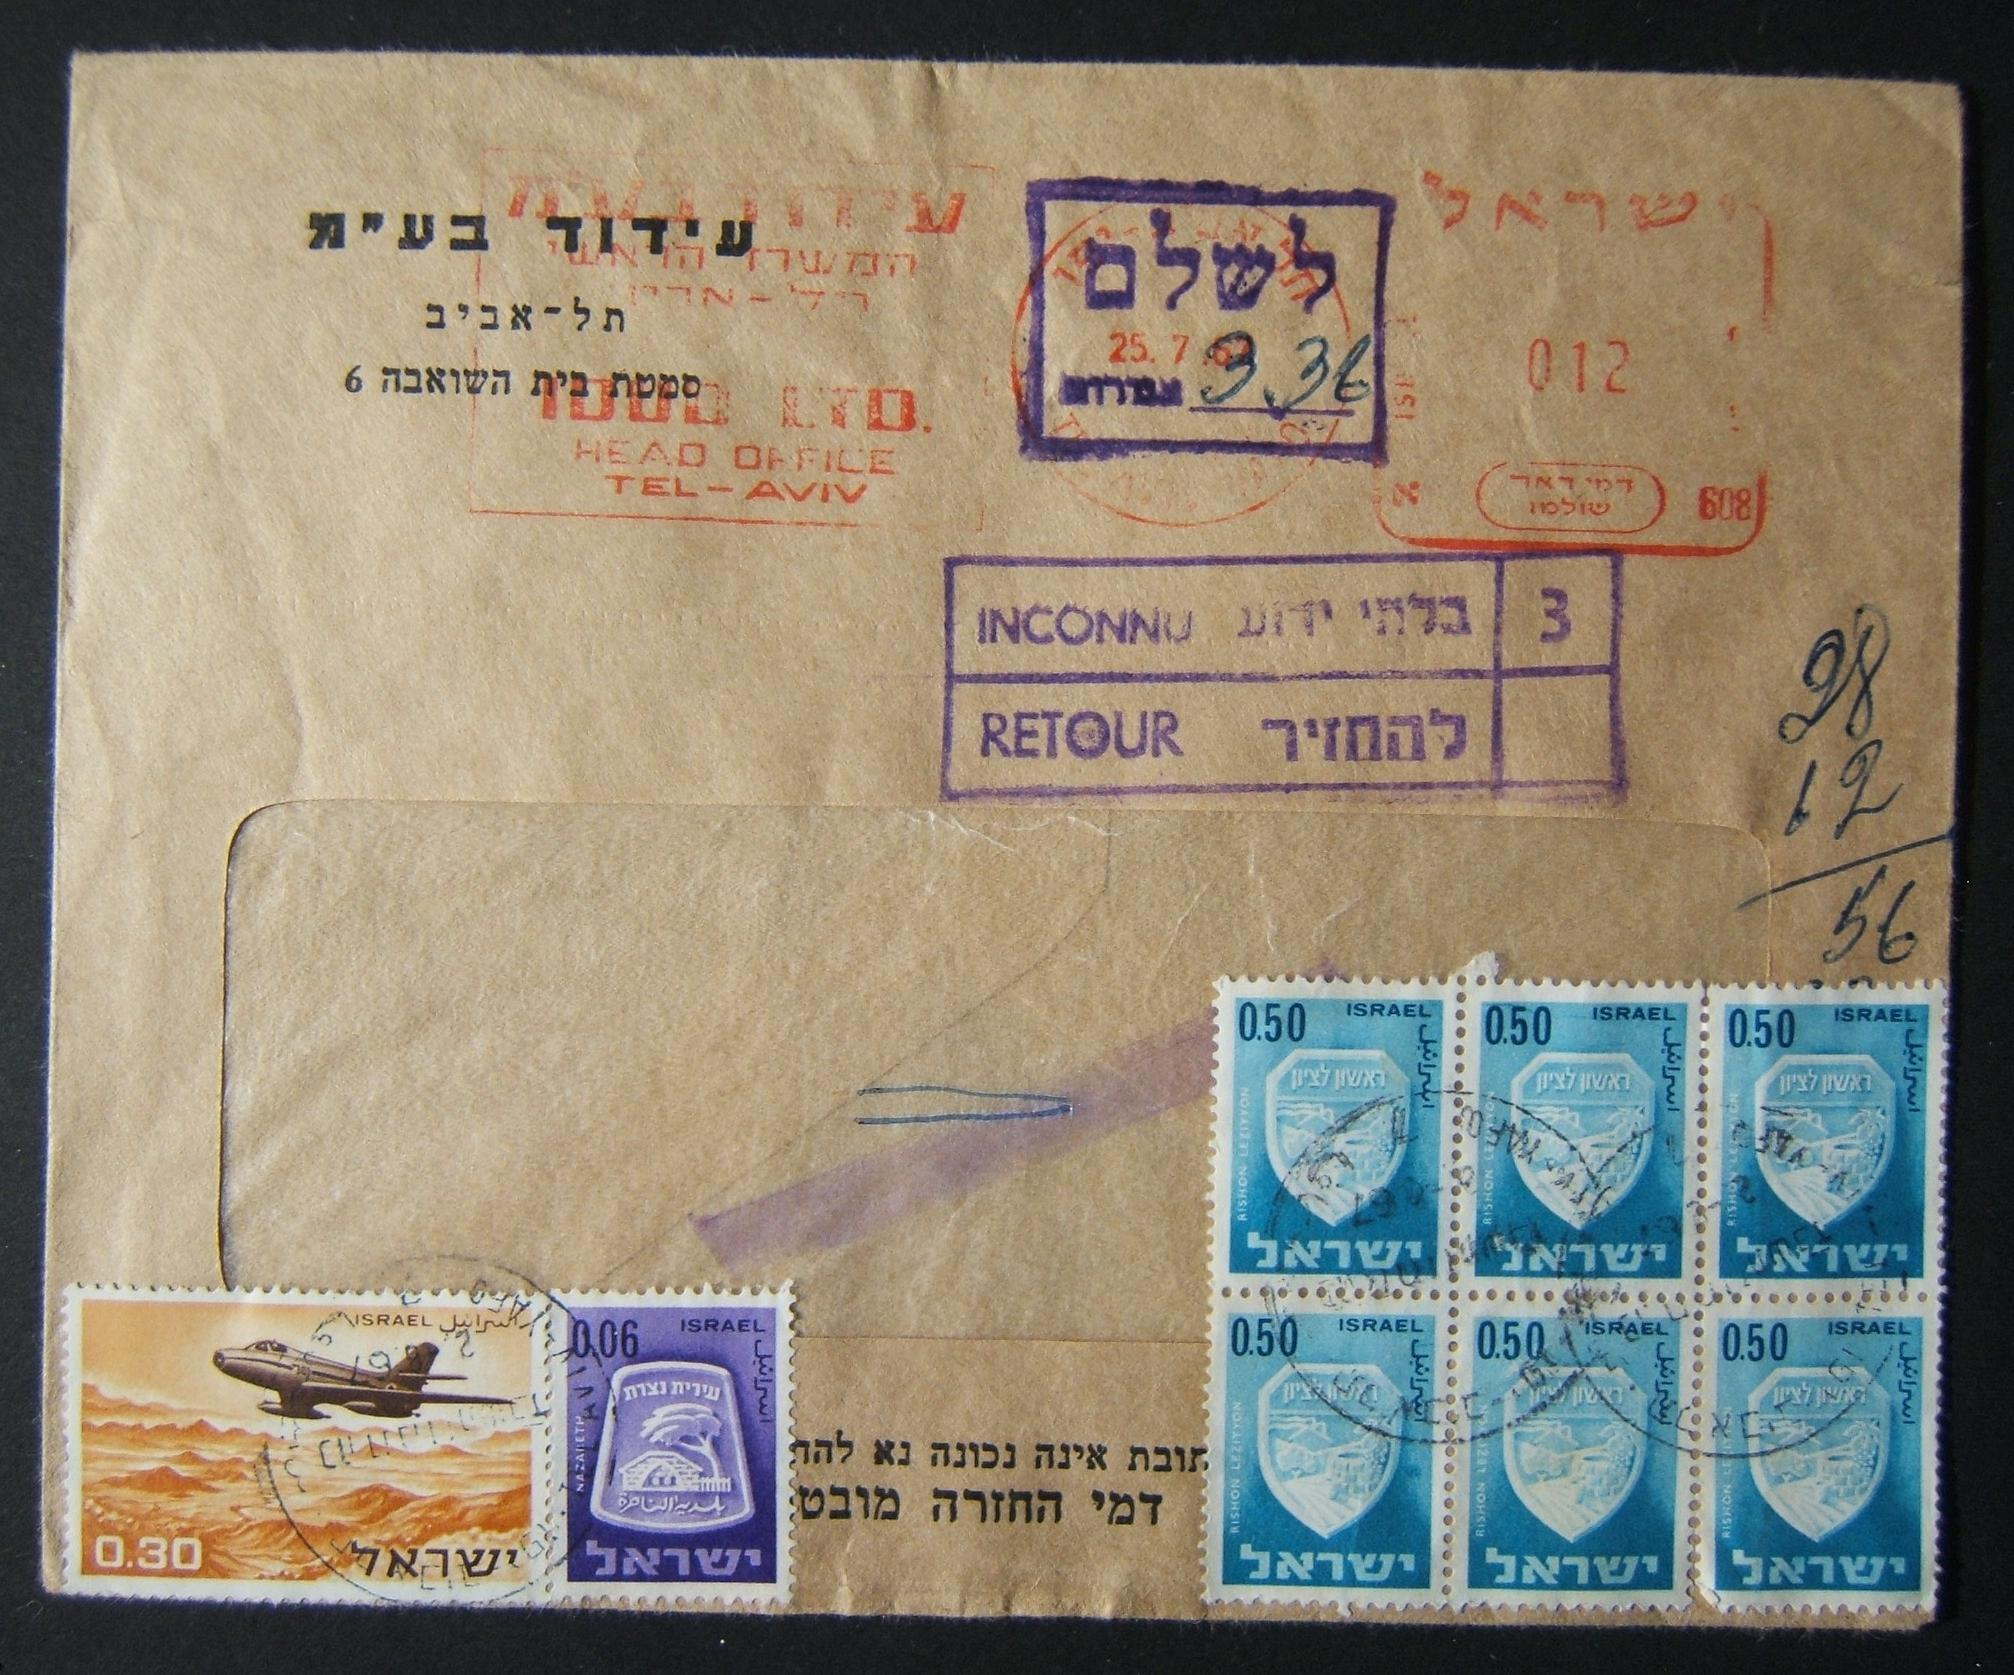 1967 domestic 'top of the pile' taxed franking: 25-7-67 pm comm. cv ex TLV franked by meter at DO-12 period 12 Ag rate, returned to sender as address unknown (cachet & manuscript);